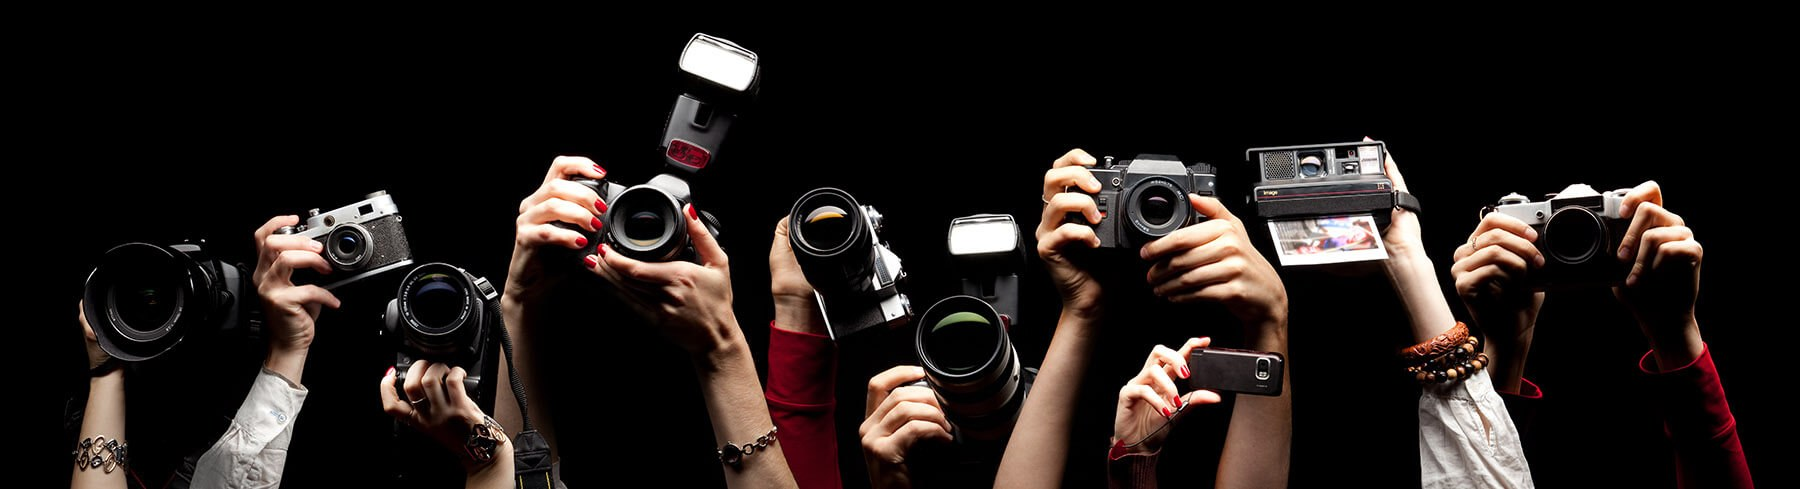 A photograph of different sorts of cameras being held up, as if at a press conference. Only the hands and forearms of the people are visible. The background is black. The image is to suggest a range of different photographers from which you have to select someone for your photoshoot.